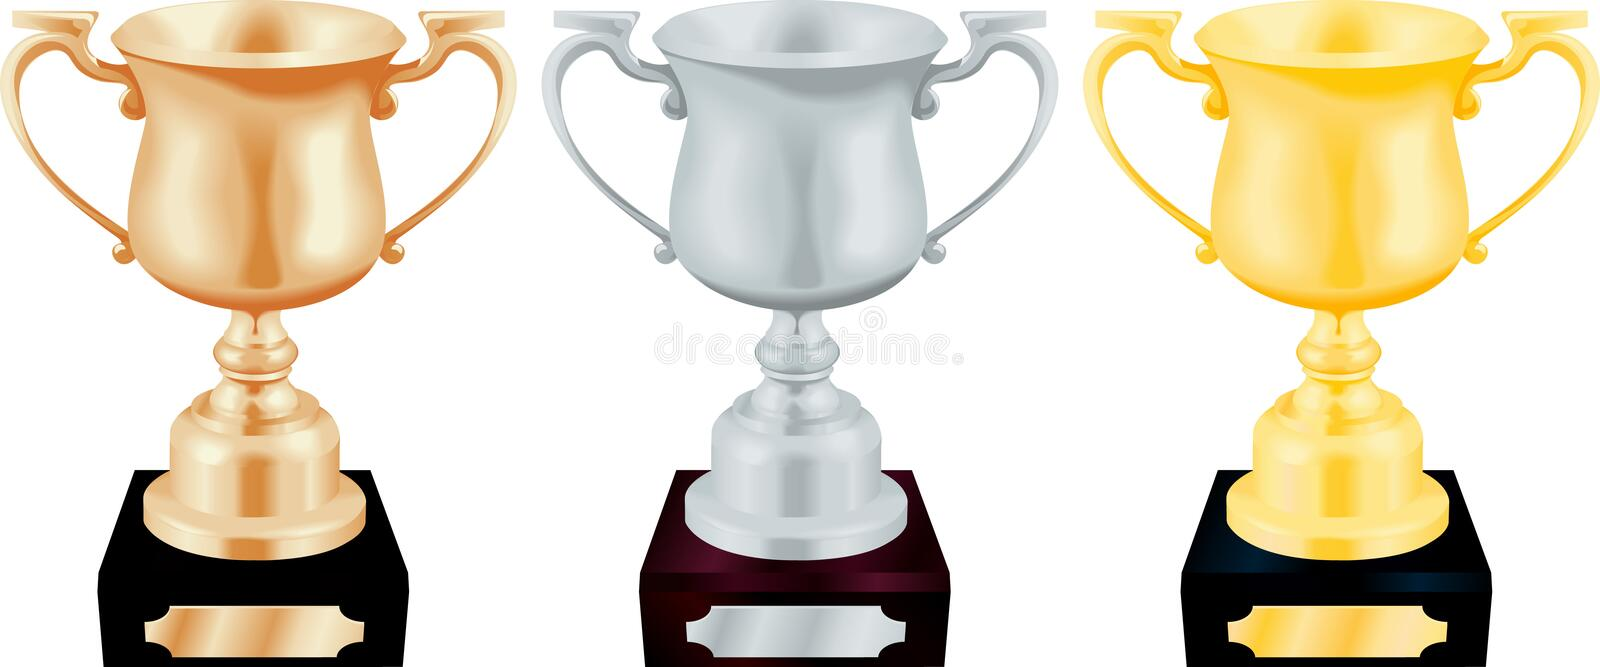 Gold Silver and Bronze Trophy vector illustration